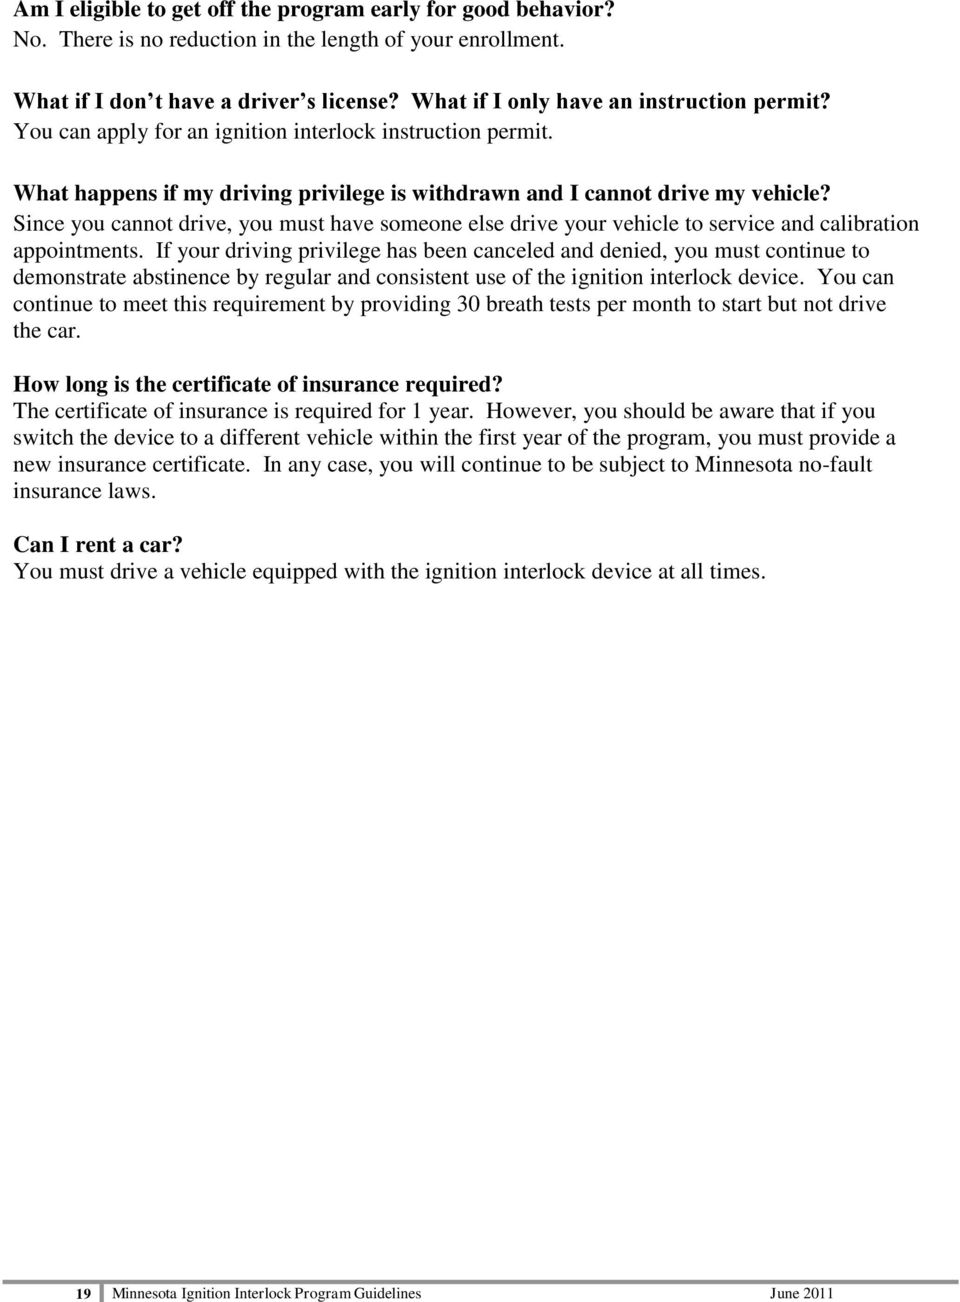 Minnesota Ignition Interlock Device Program Guidelines Pdf